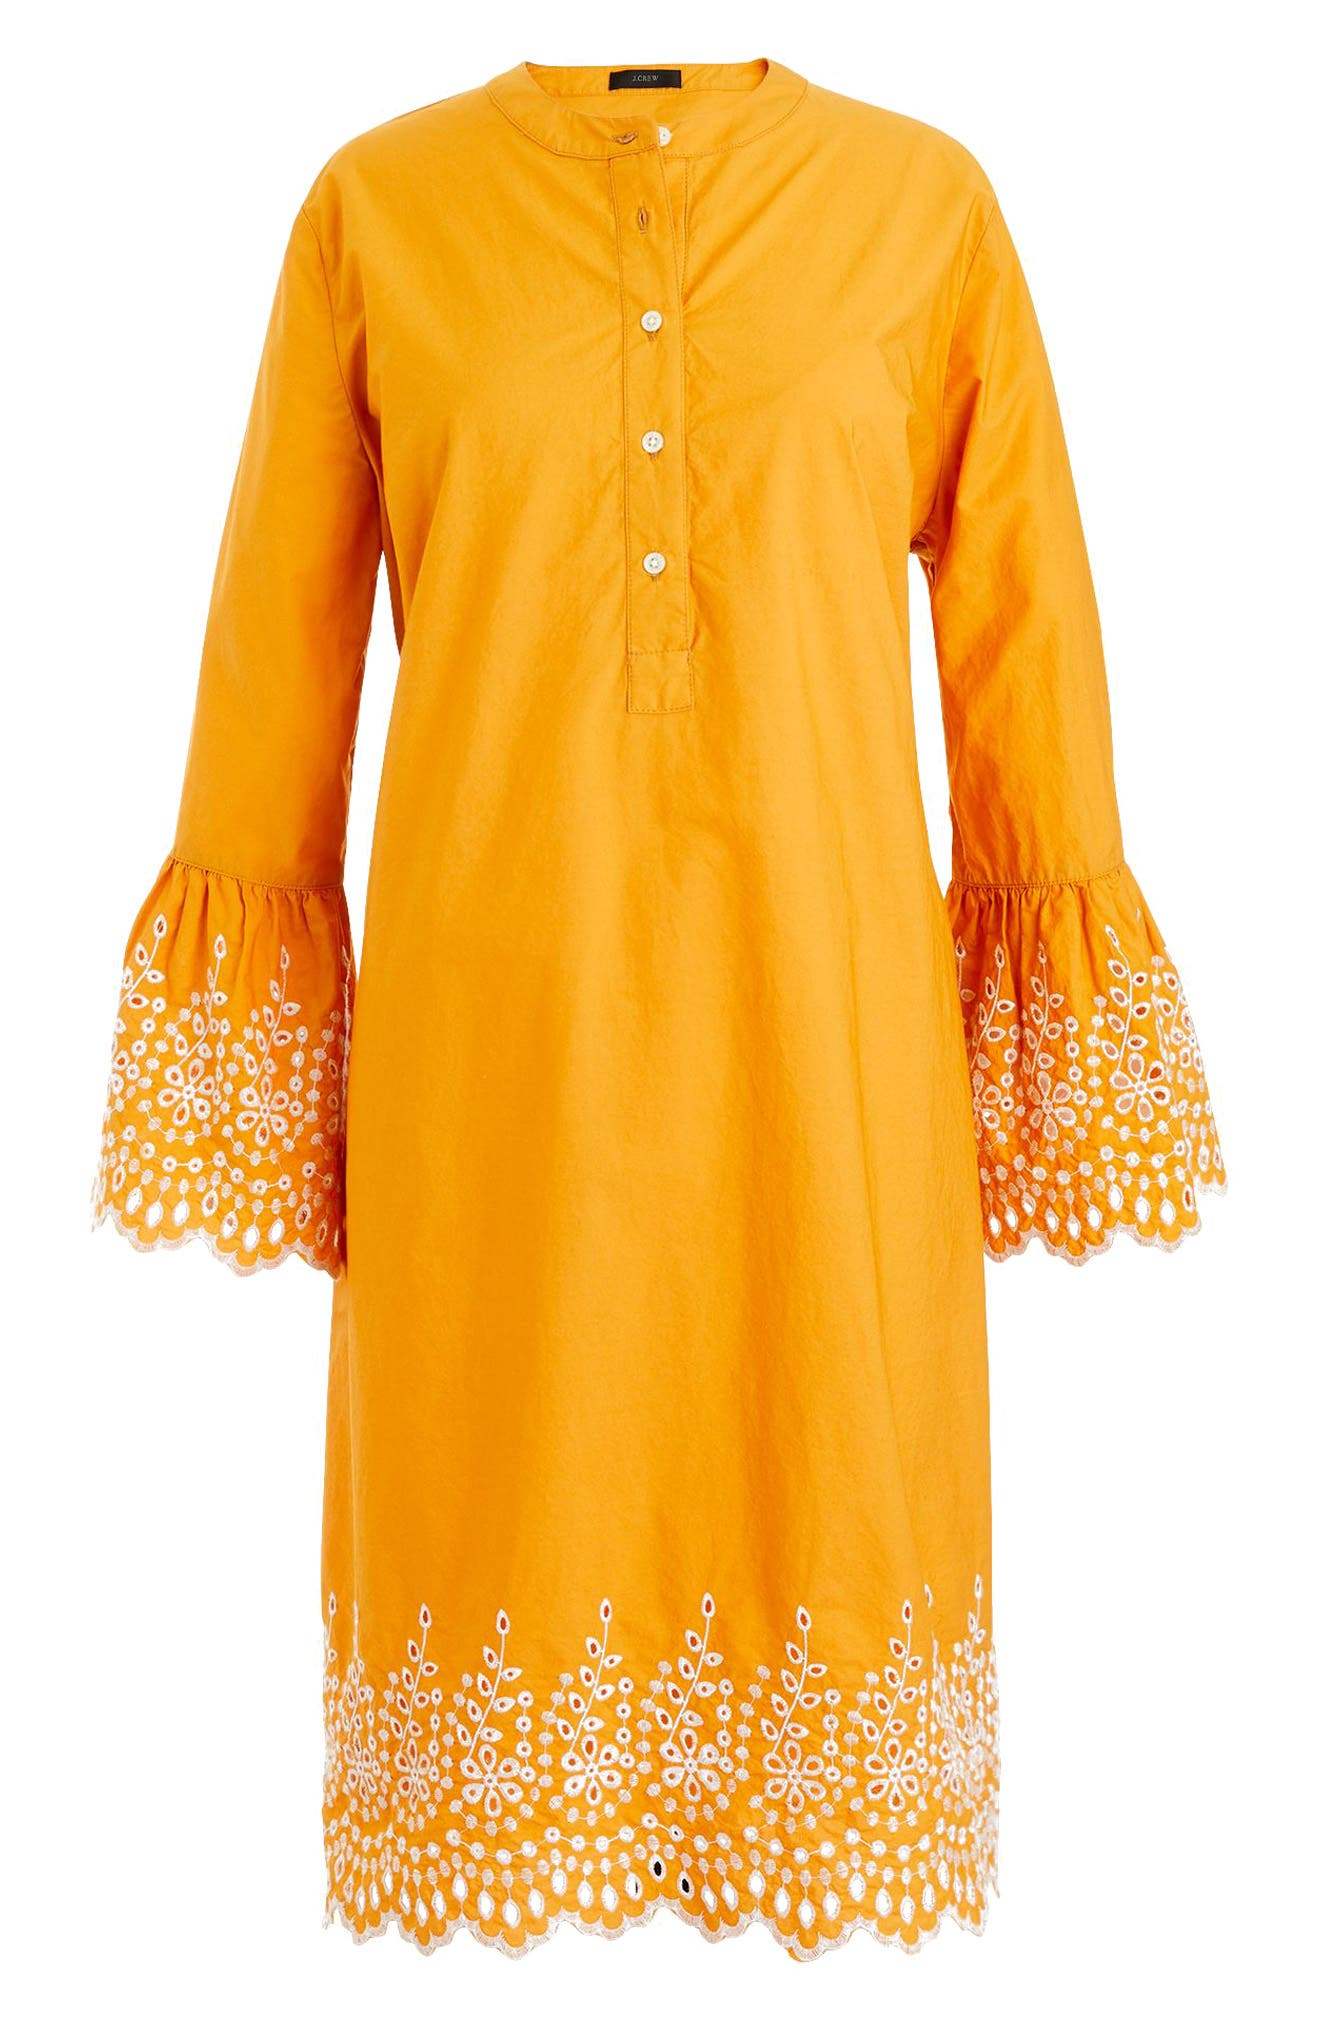 J.Crew Eyelet Bell Sleeve Dress,                             Alternate thumbnail 4, color,                             Bronzed Orange